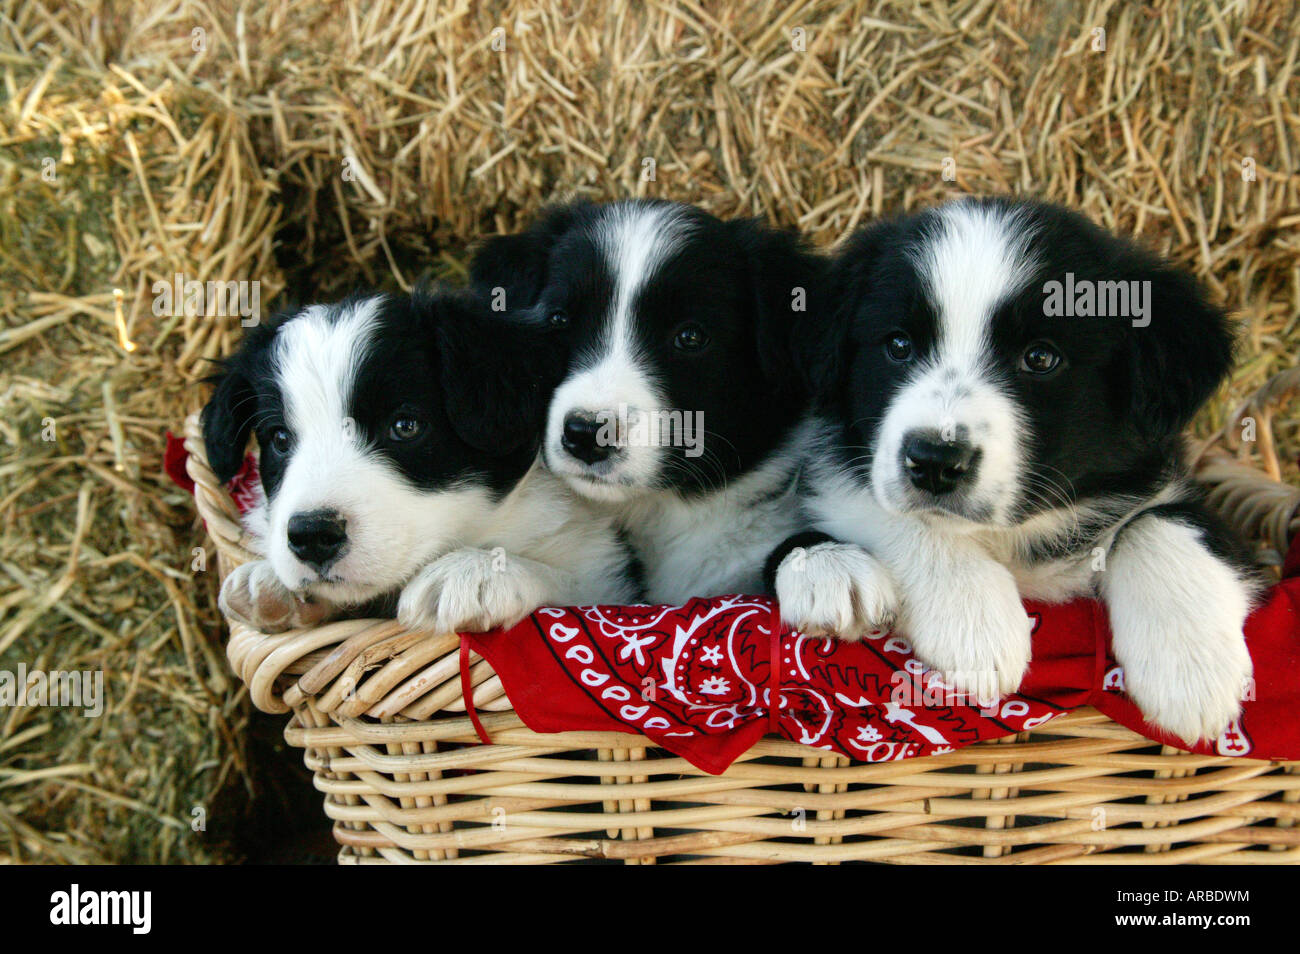 Border Collie Puppies in woven basket Stock Photo Royalty Free